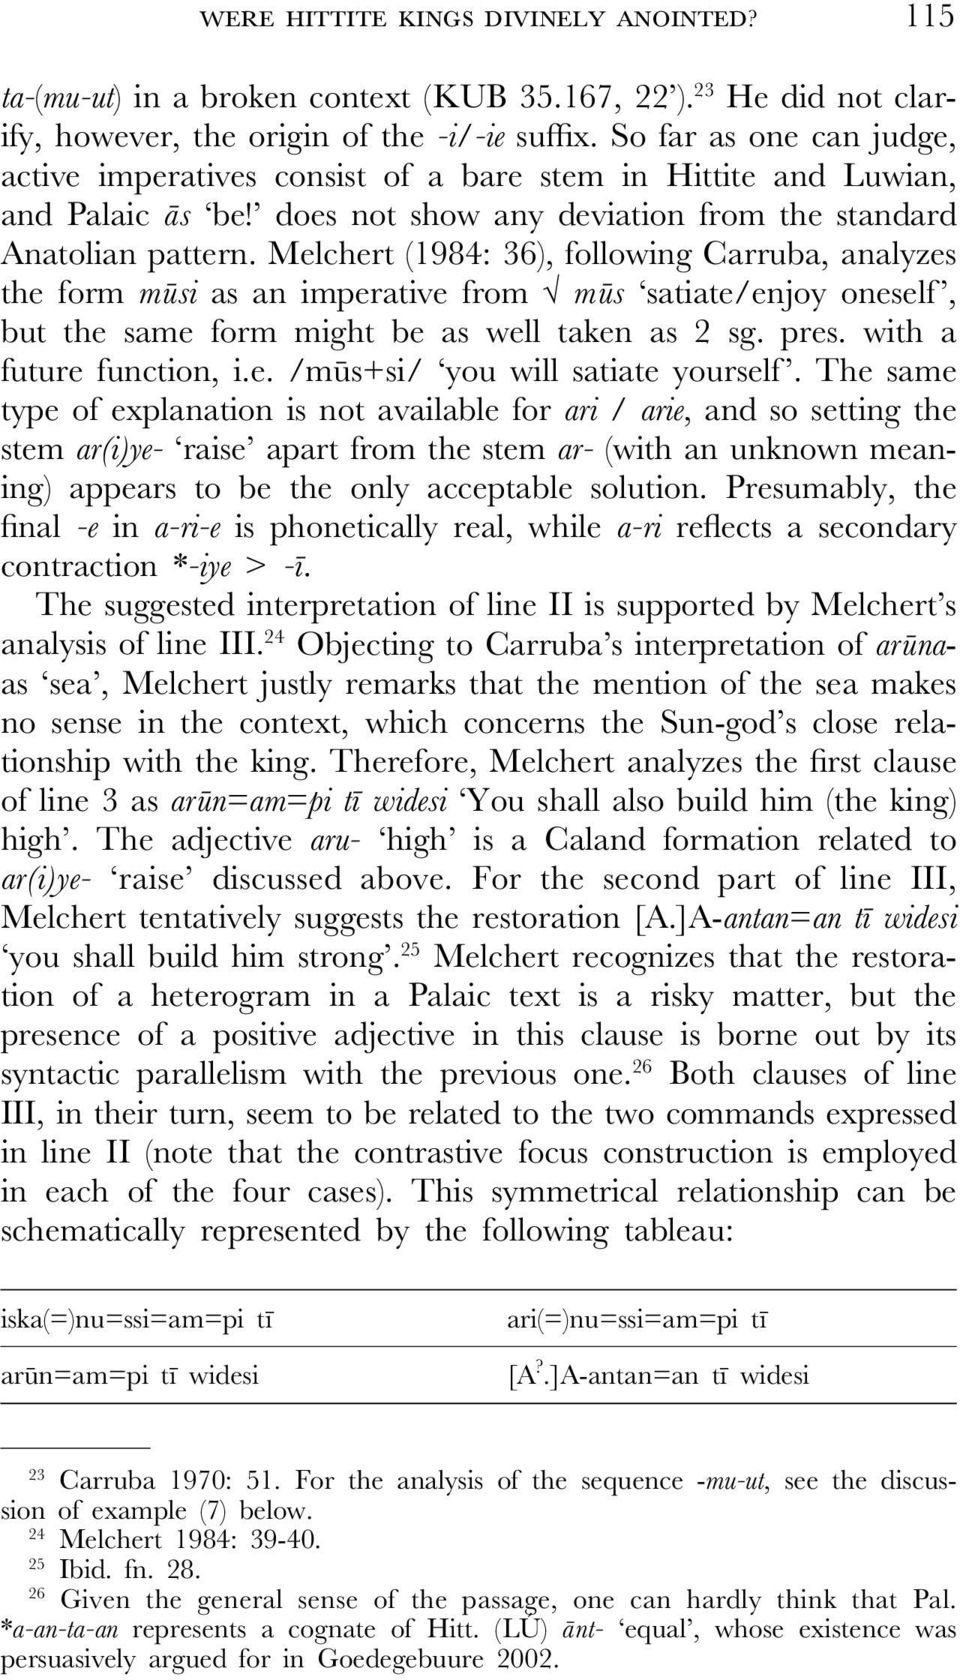 Melchert (1984: 36), following Carruba, analyzes the form mùsi as an imperative from mùs satiate/enjoy oneself, but the same form might be as well taken as 2 sg. pres. with a future function, i.e. /mùs+si/ you will satiate yourself.